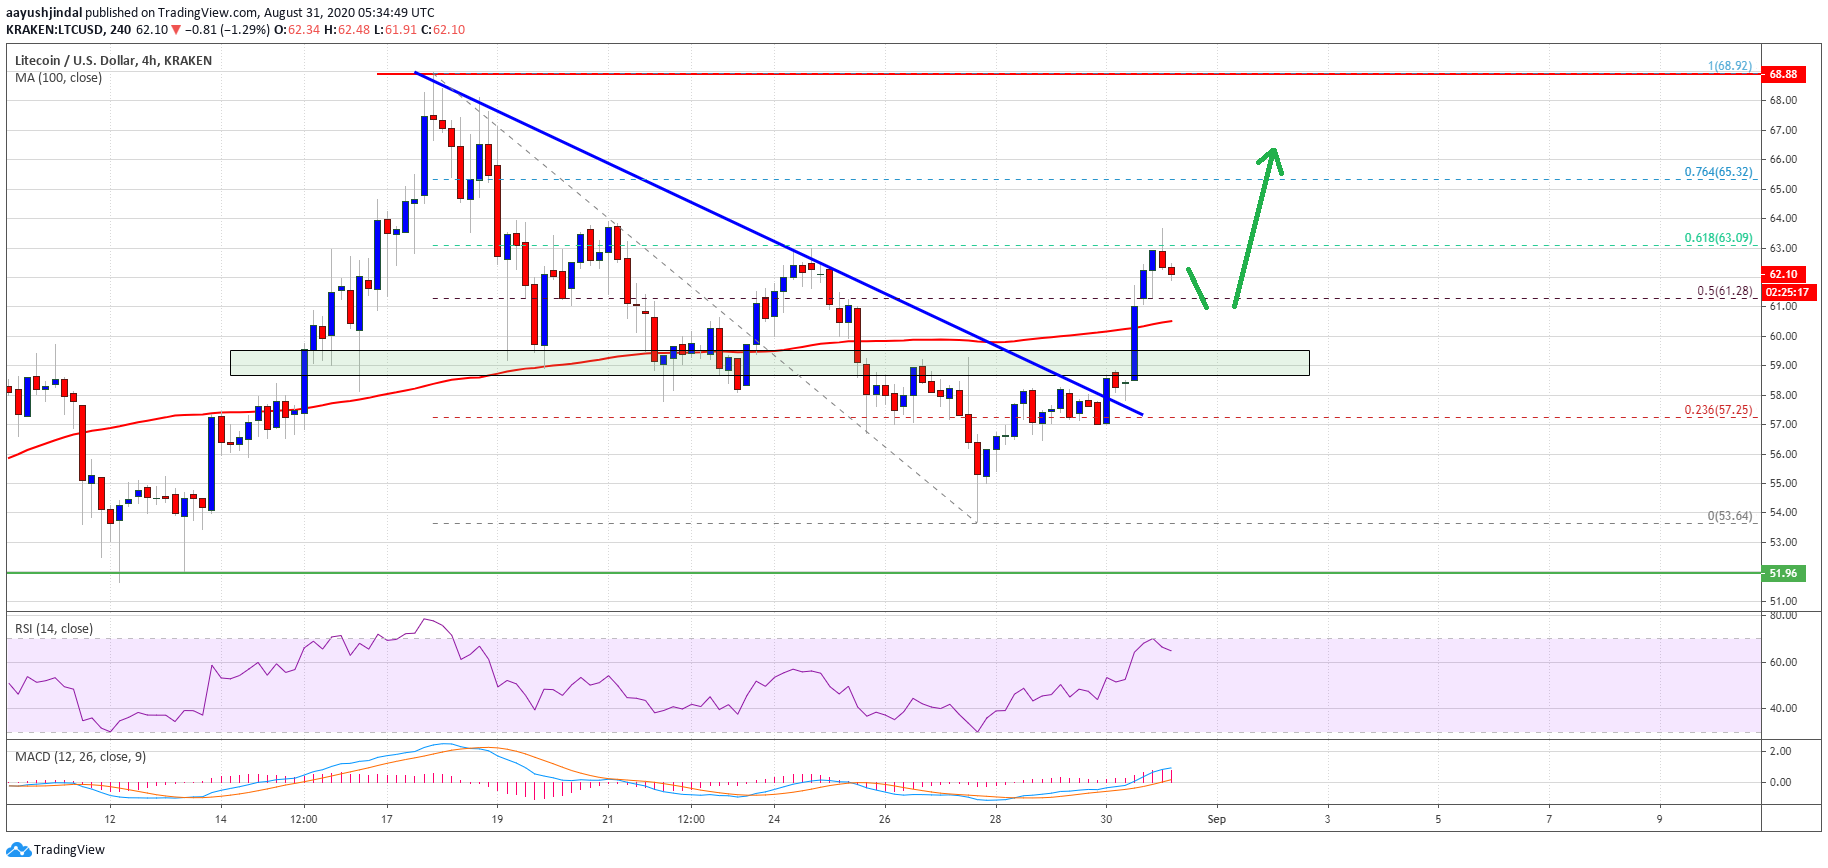 Litecoin Price Holds Strong at $60: A Bullish Case For Rally To $70